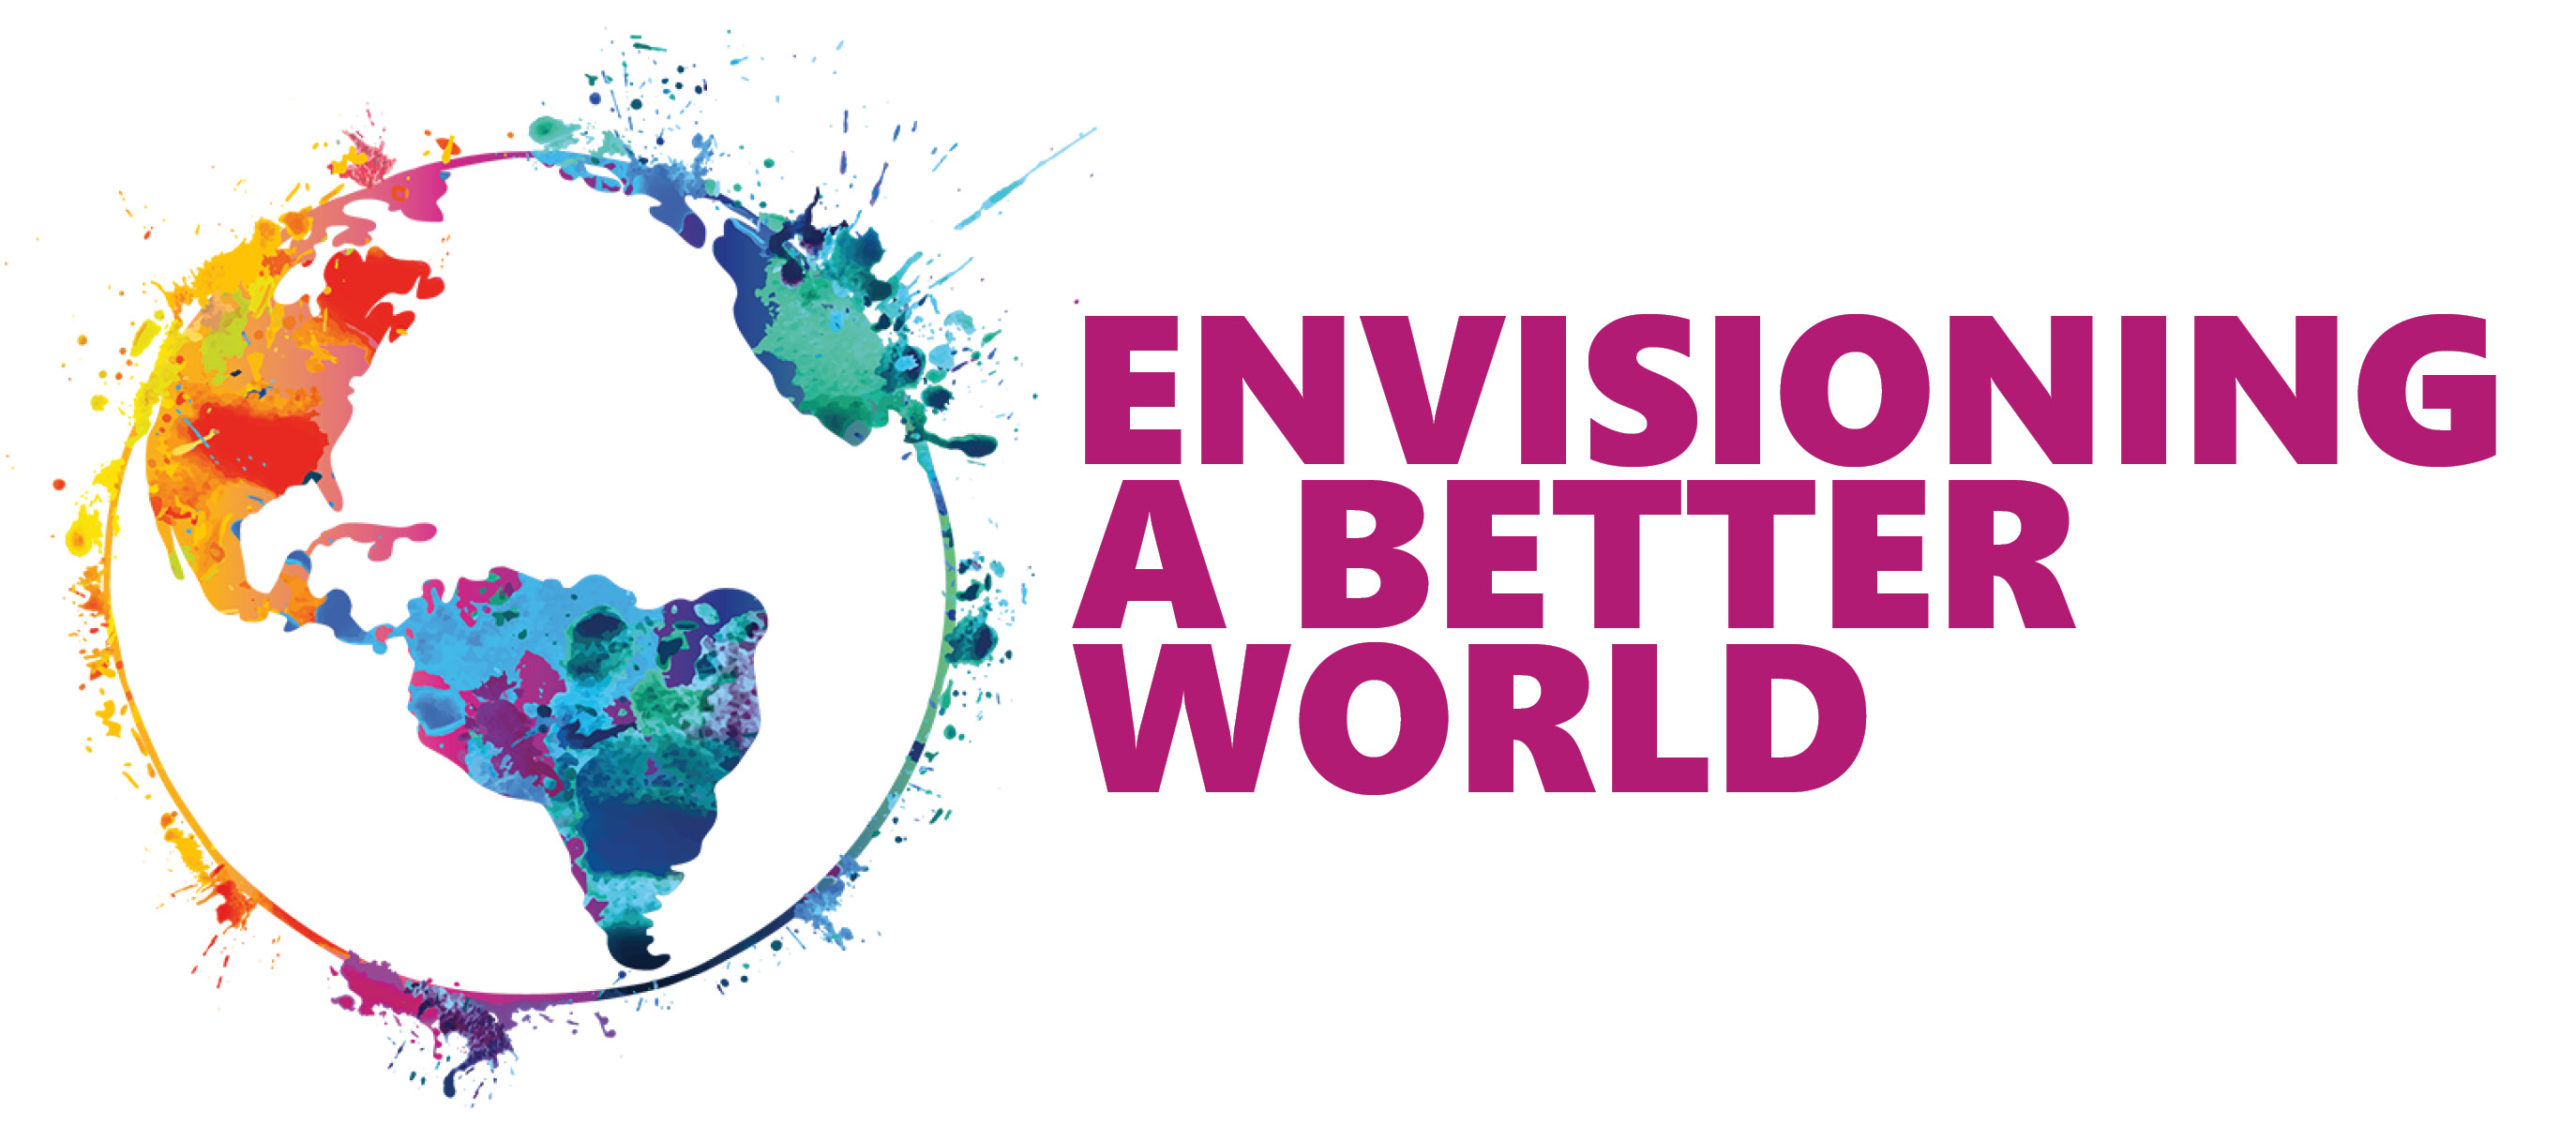 Envisioning A Better World